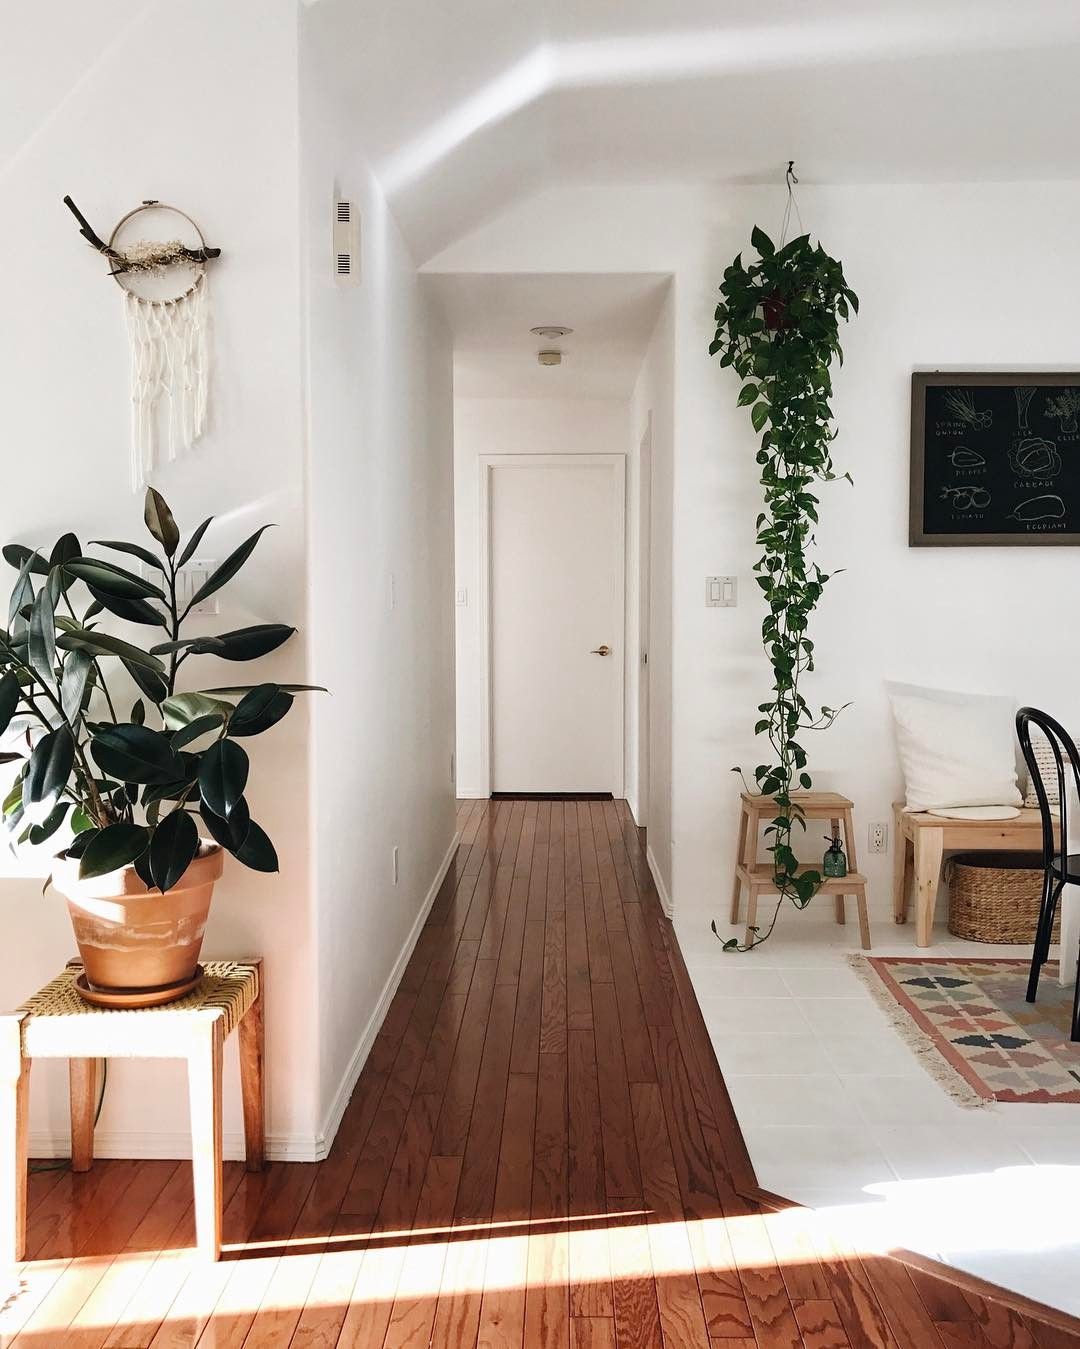 Bright and clean simple entryway with plants interior design